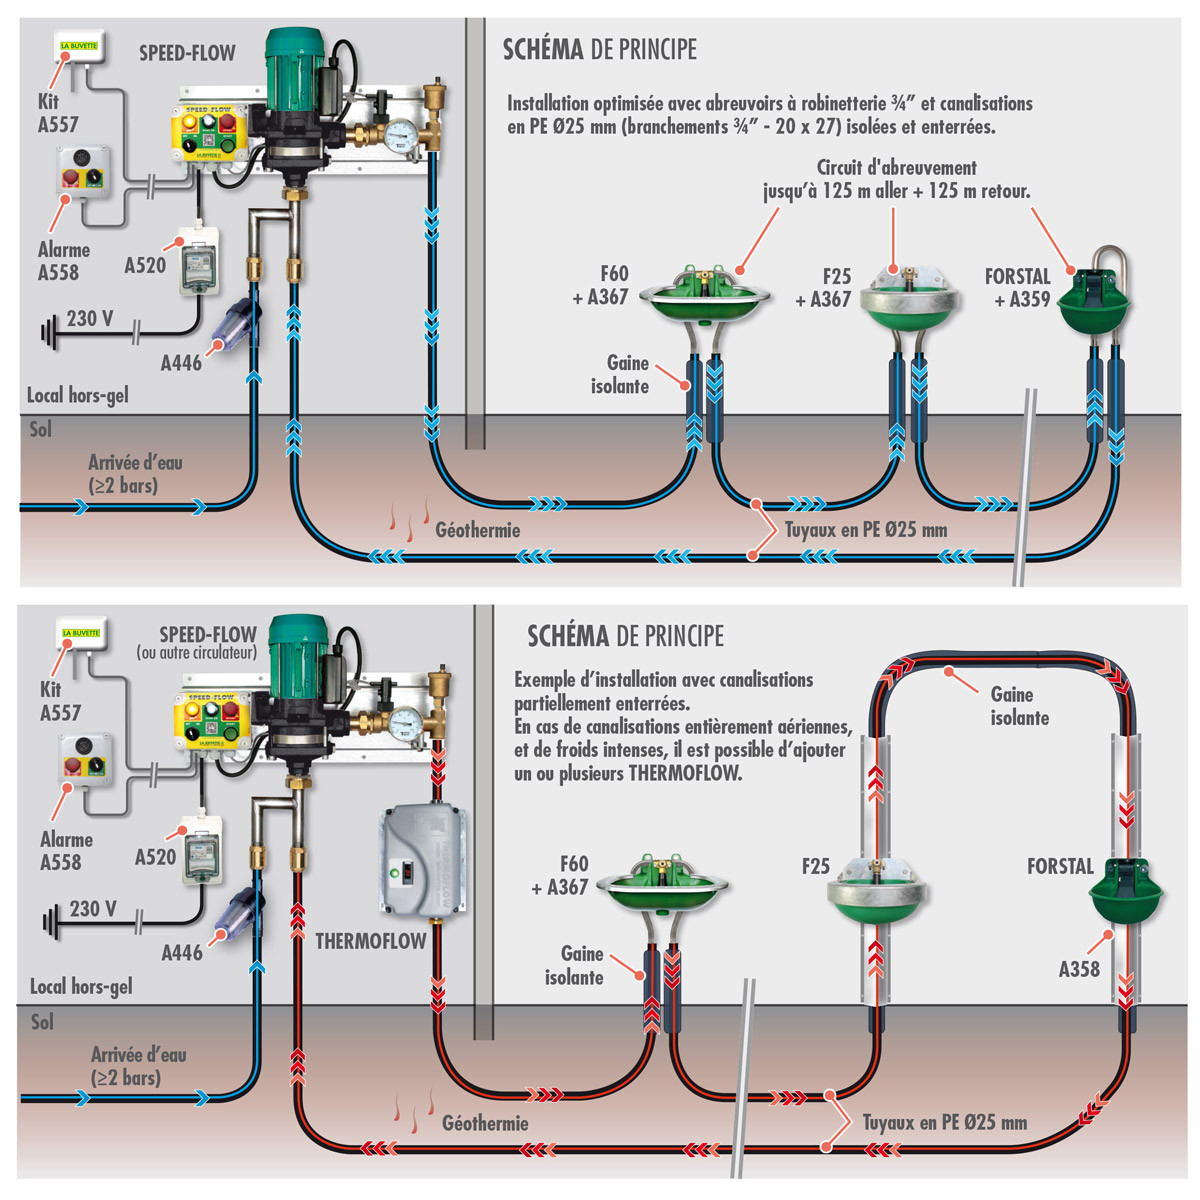 E pic6 759 moreover N Channel Jfet Schematic likewise E pic6 86 also Ferbach in addition Remplacer Tableau Electrique Triphase Vetuste. on elec circuits